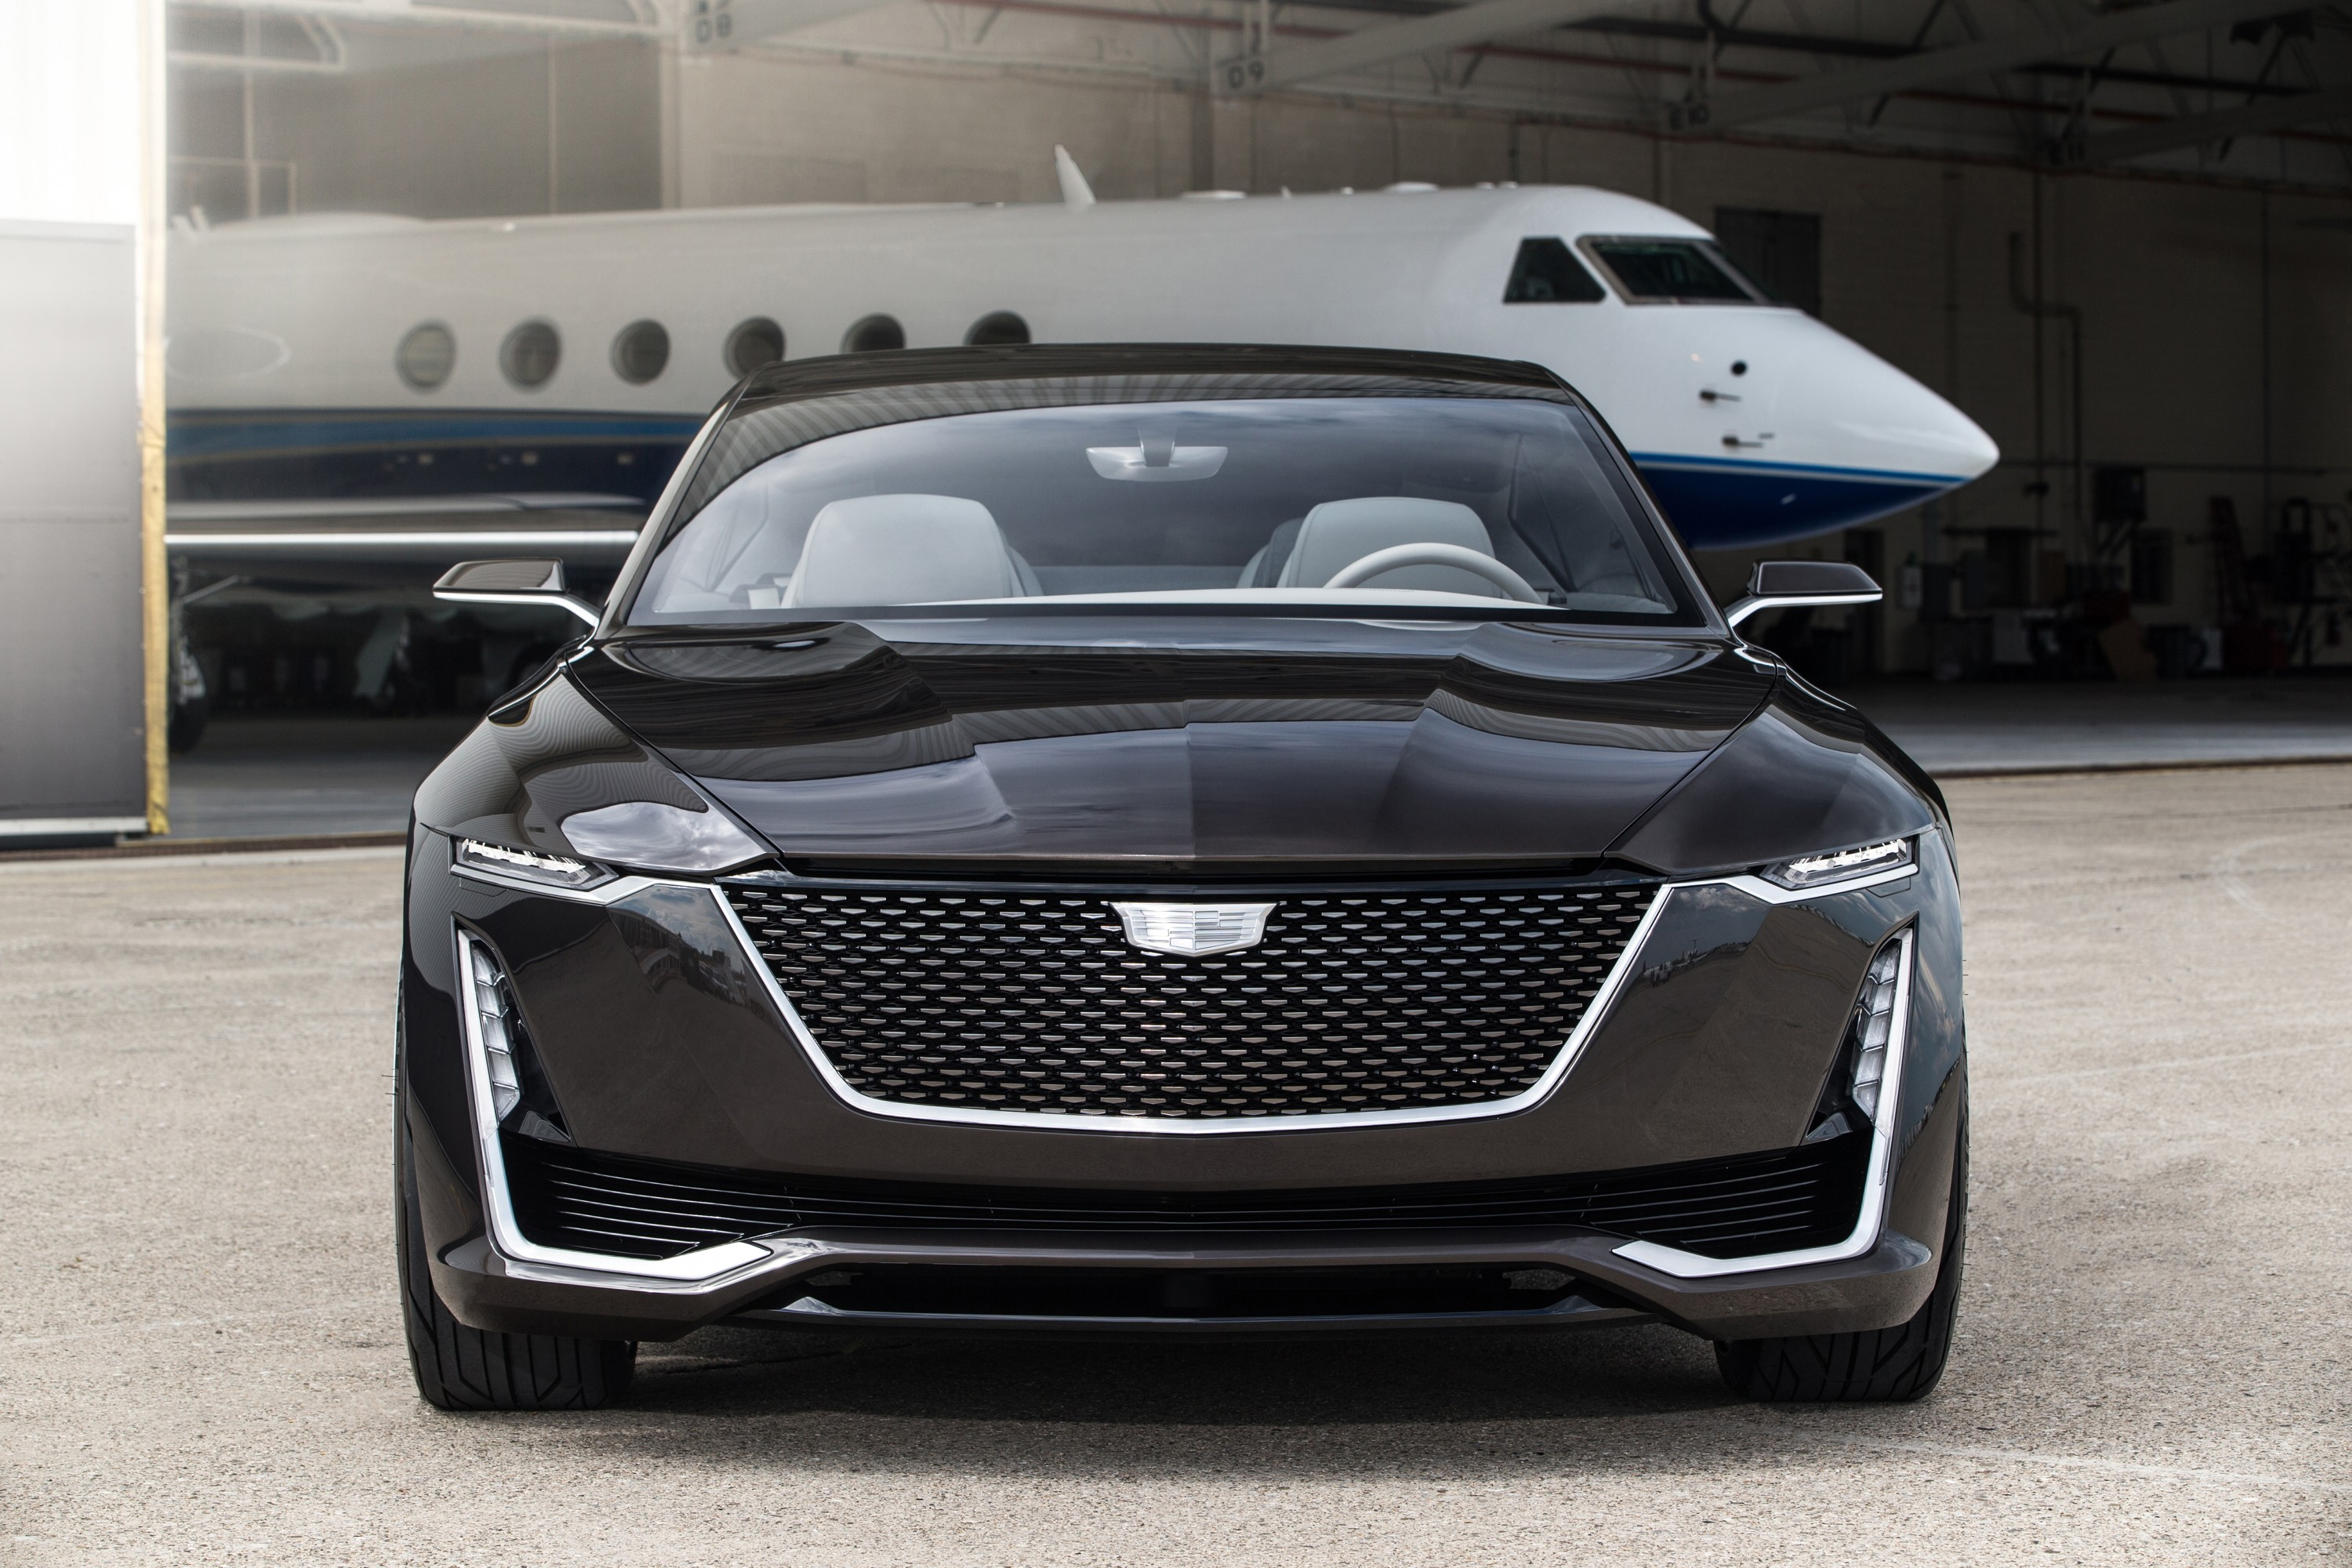 70 All New 2020 Cadillac Cts V Concept and Review